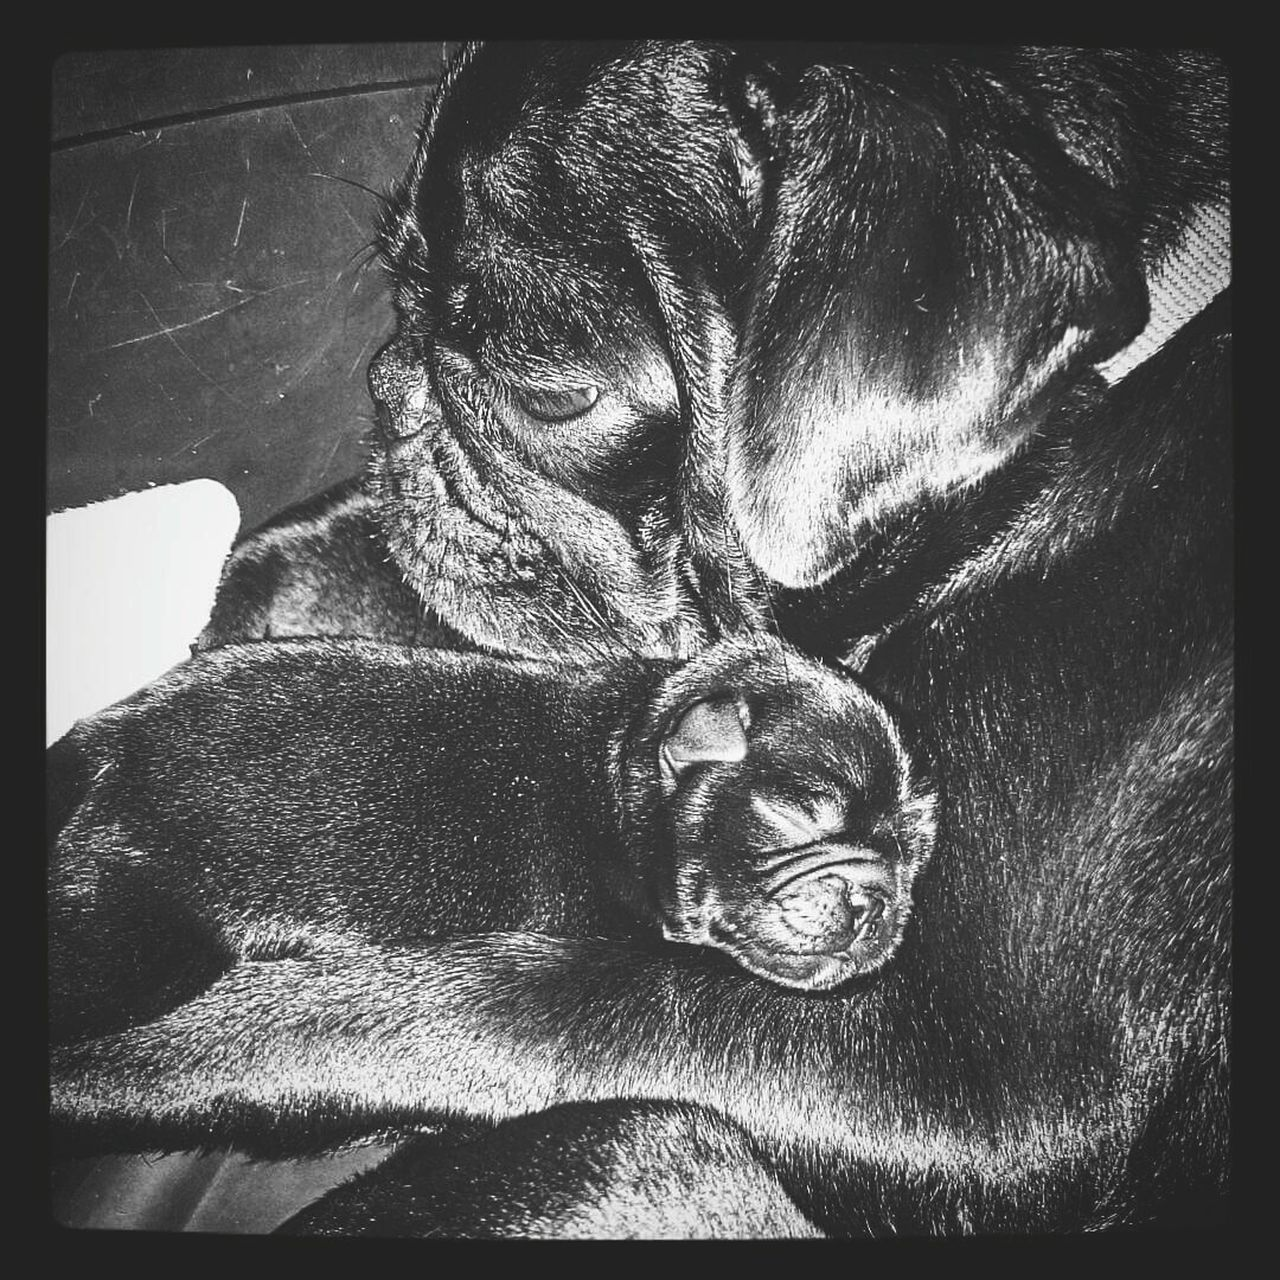 A mother's love. Puppy Pug Life  Pug Pug Love Pugofmylife Puglover Pugsnotdrugs  Pug Time PugPuppy Pet Photography  Pet Owner Pets Pet Love Petslife Dog Life Dogphoto Blackandwhite Monochrome Black And White Photography EyeEmNewHere